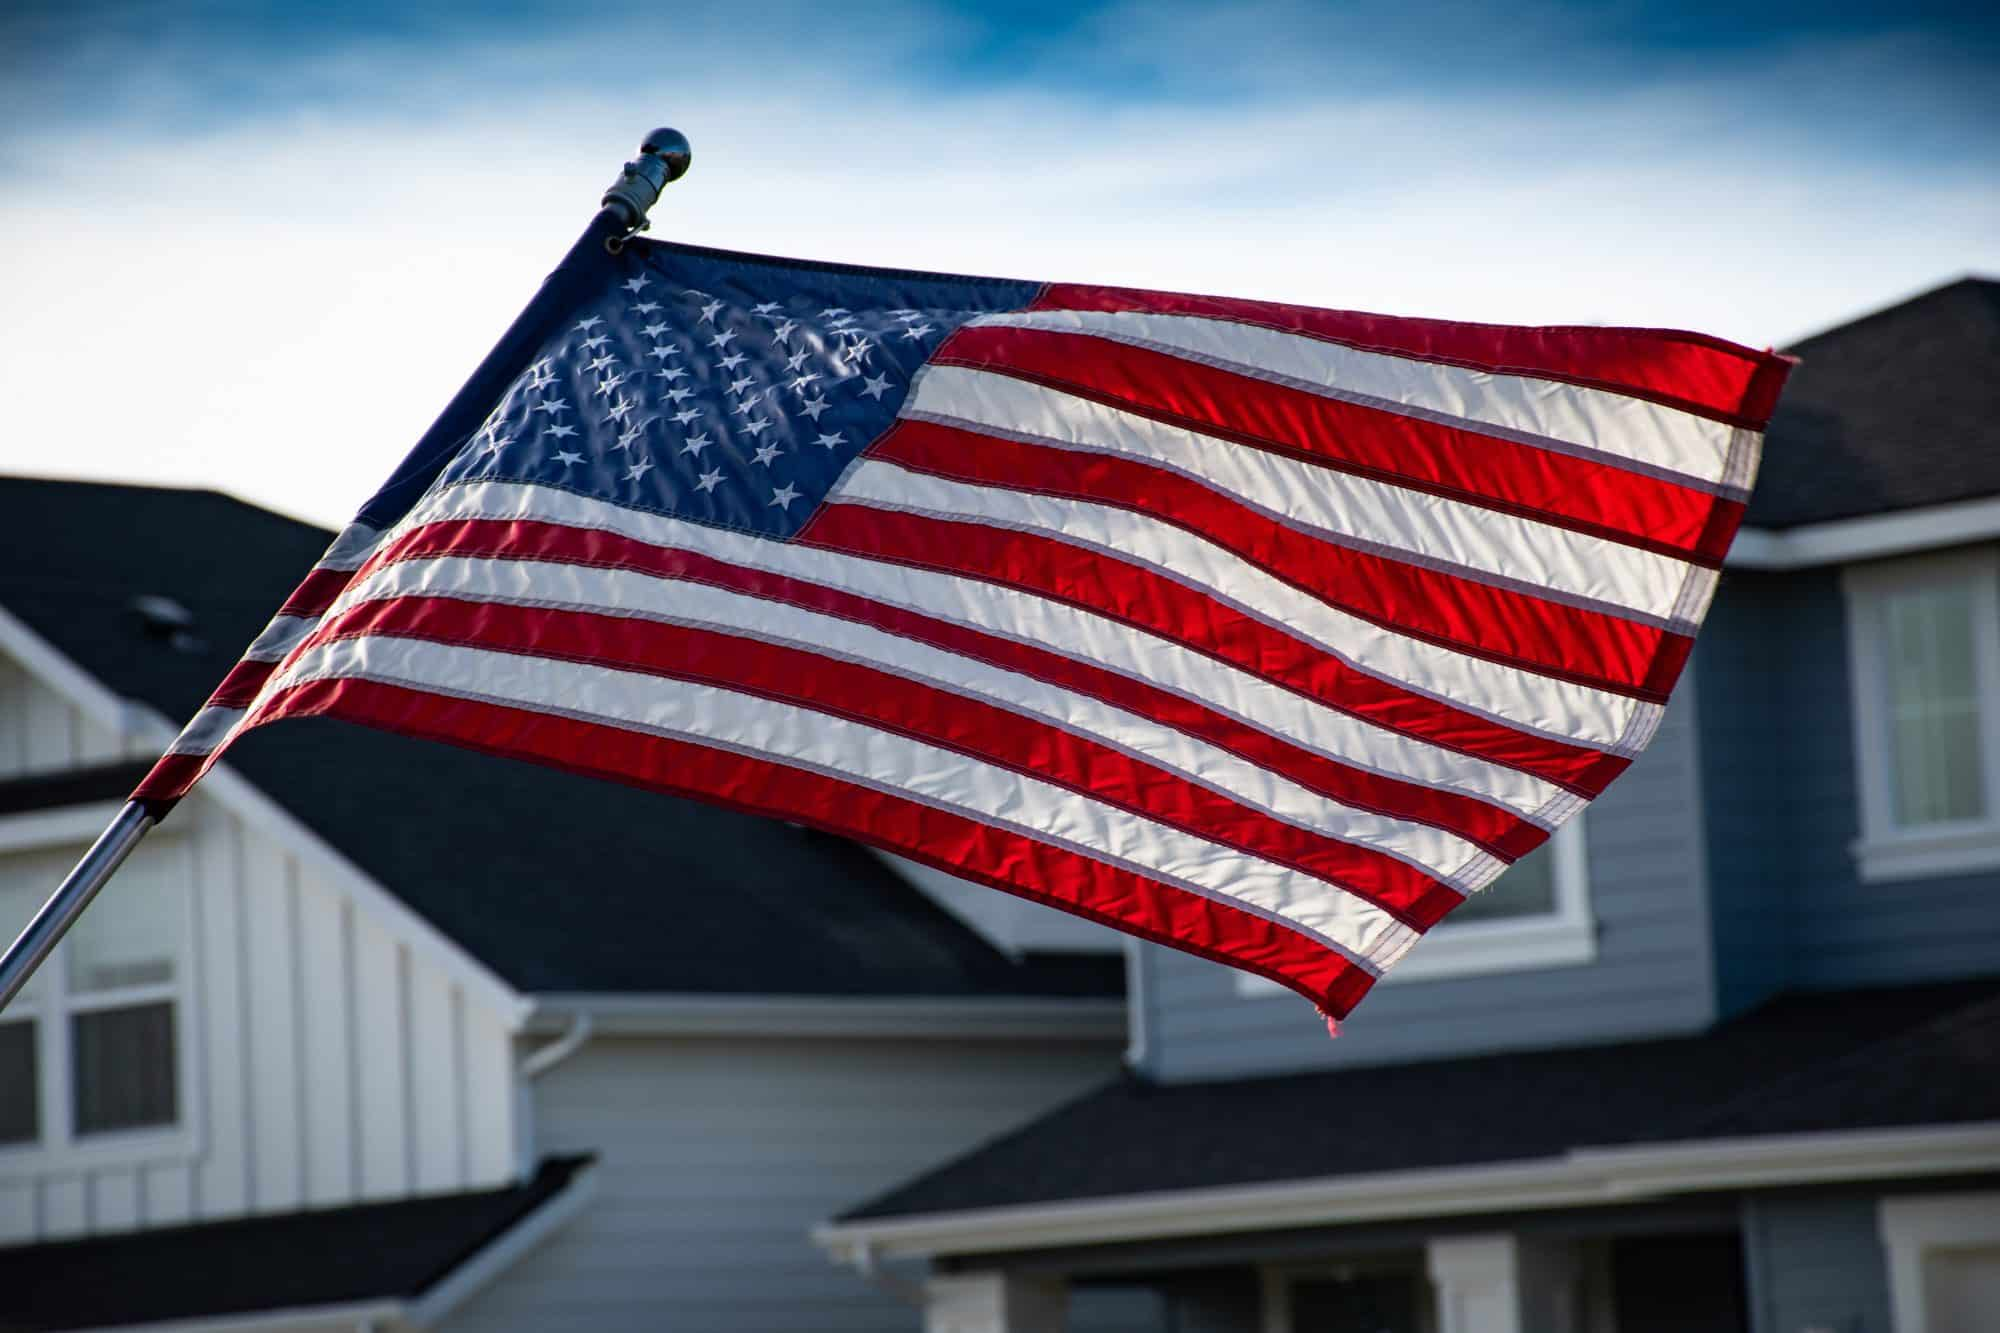 American Flag with VA Homes behind it